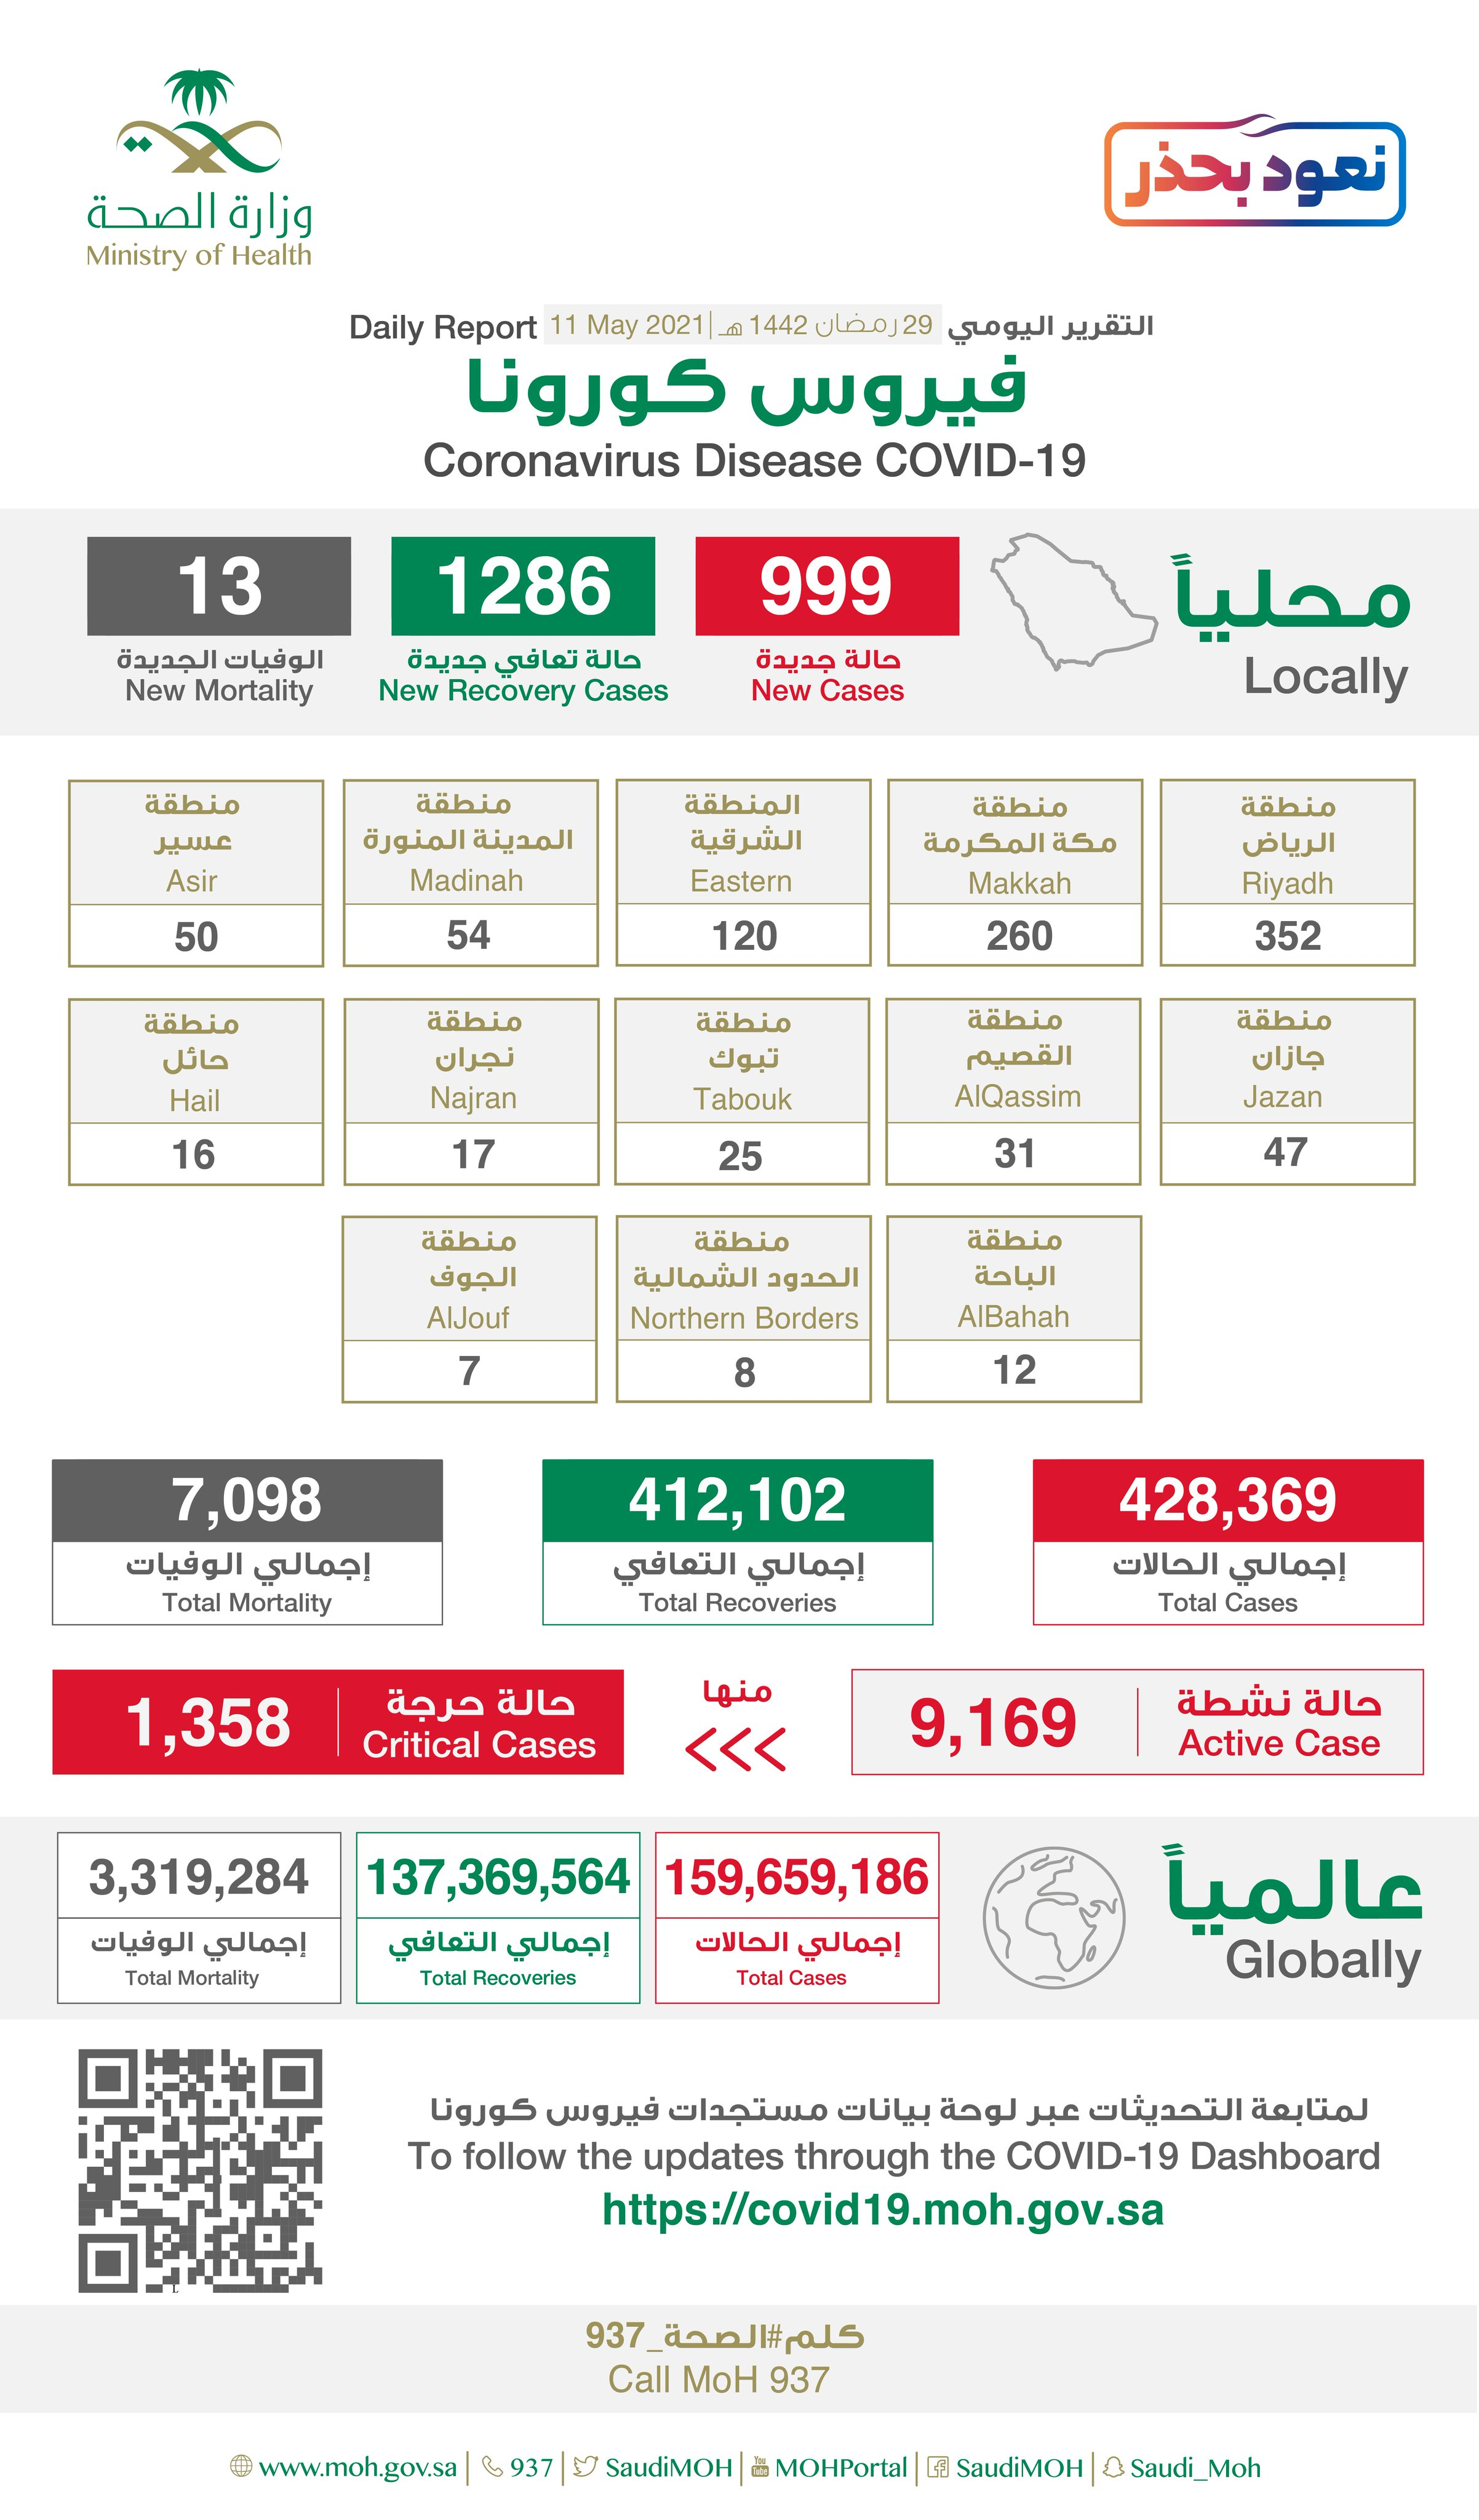 Saudi Arabia Coronavirus : Total Cases :428,369 , New Cases : 999 , Cured : 412,102 , Deaths: 7,098, Active Cases : 9,169f